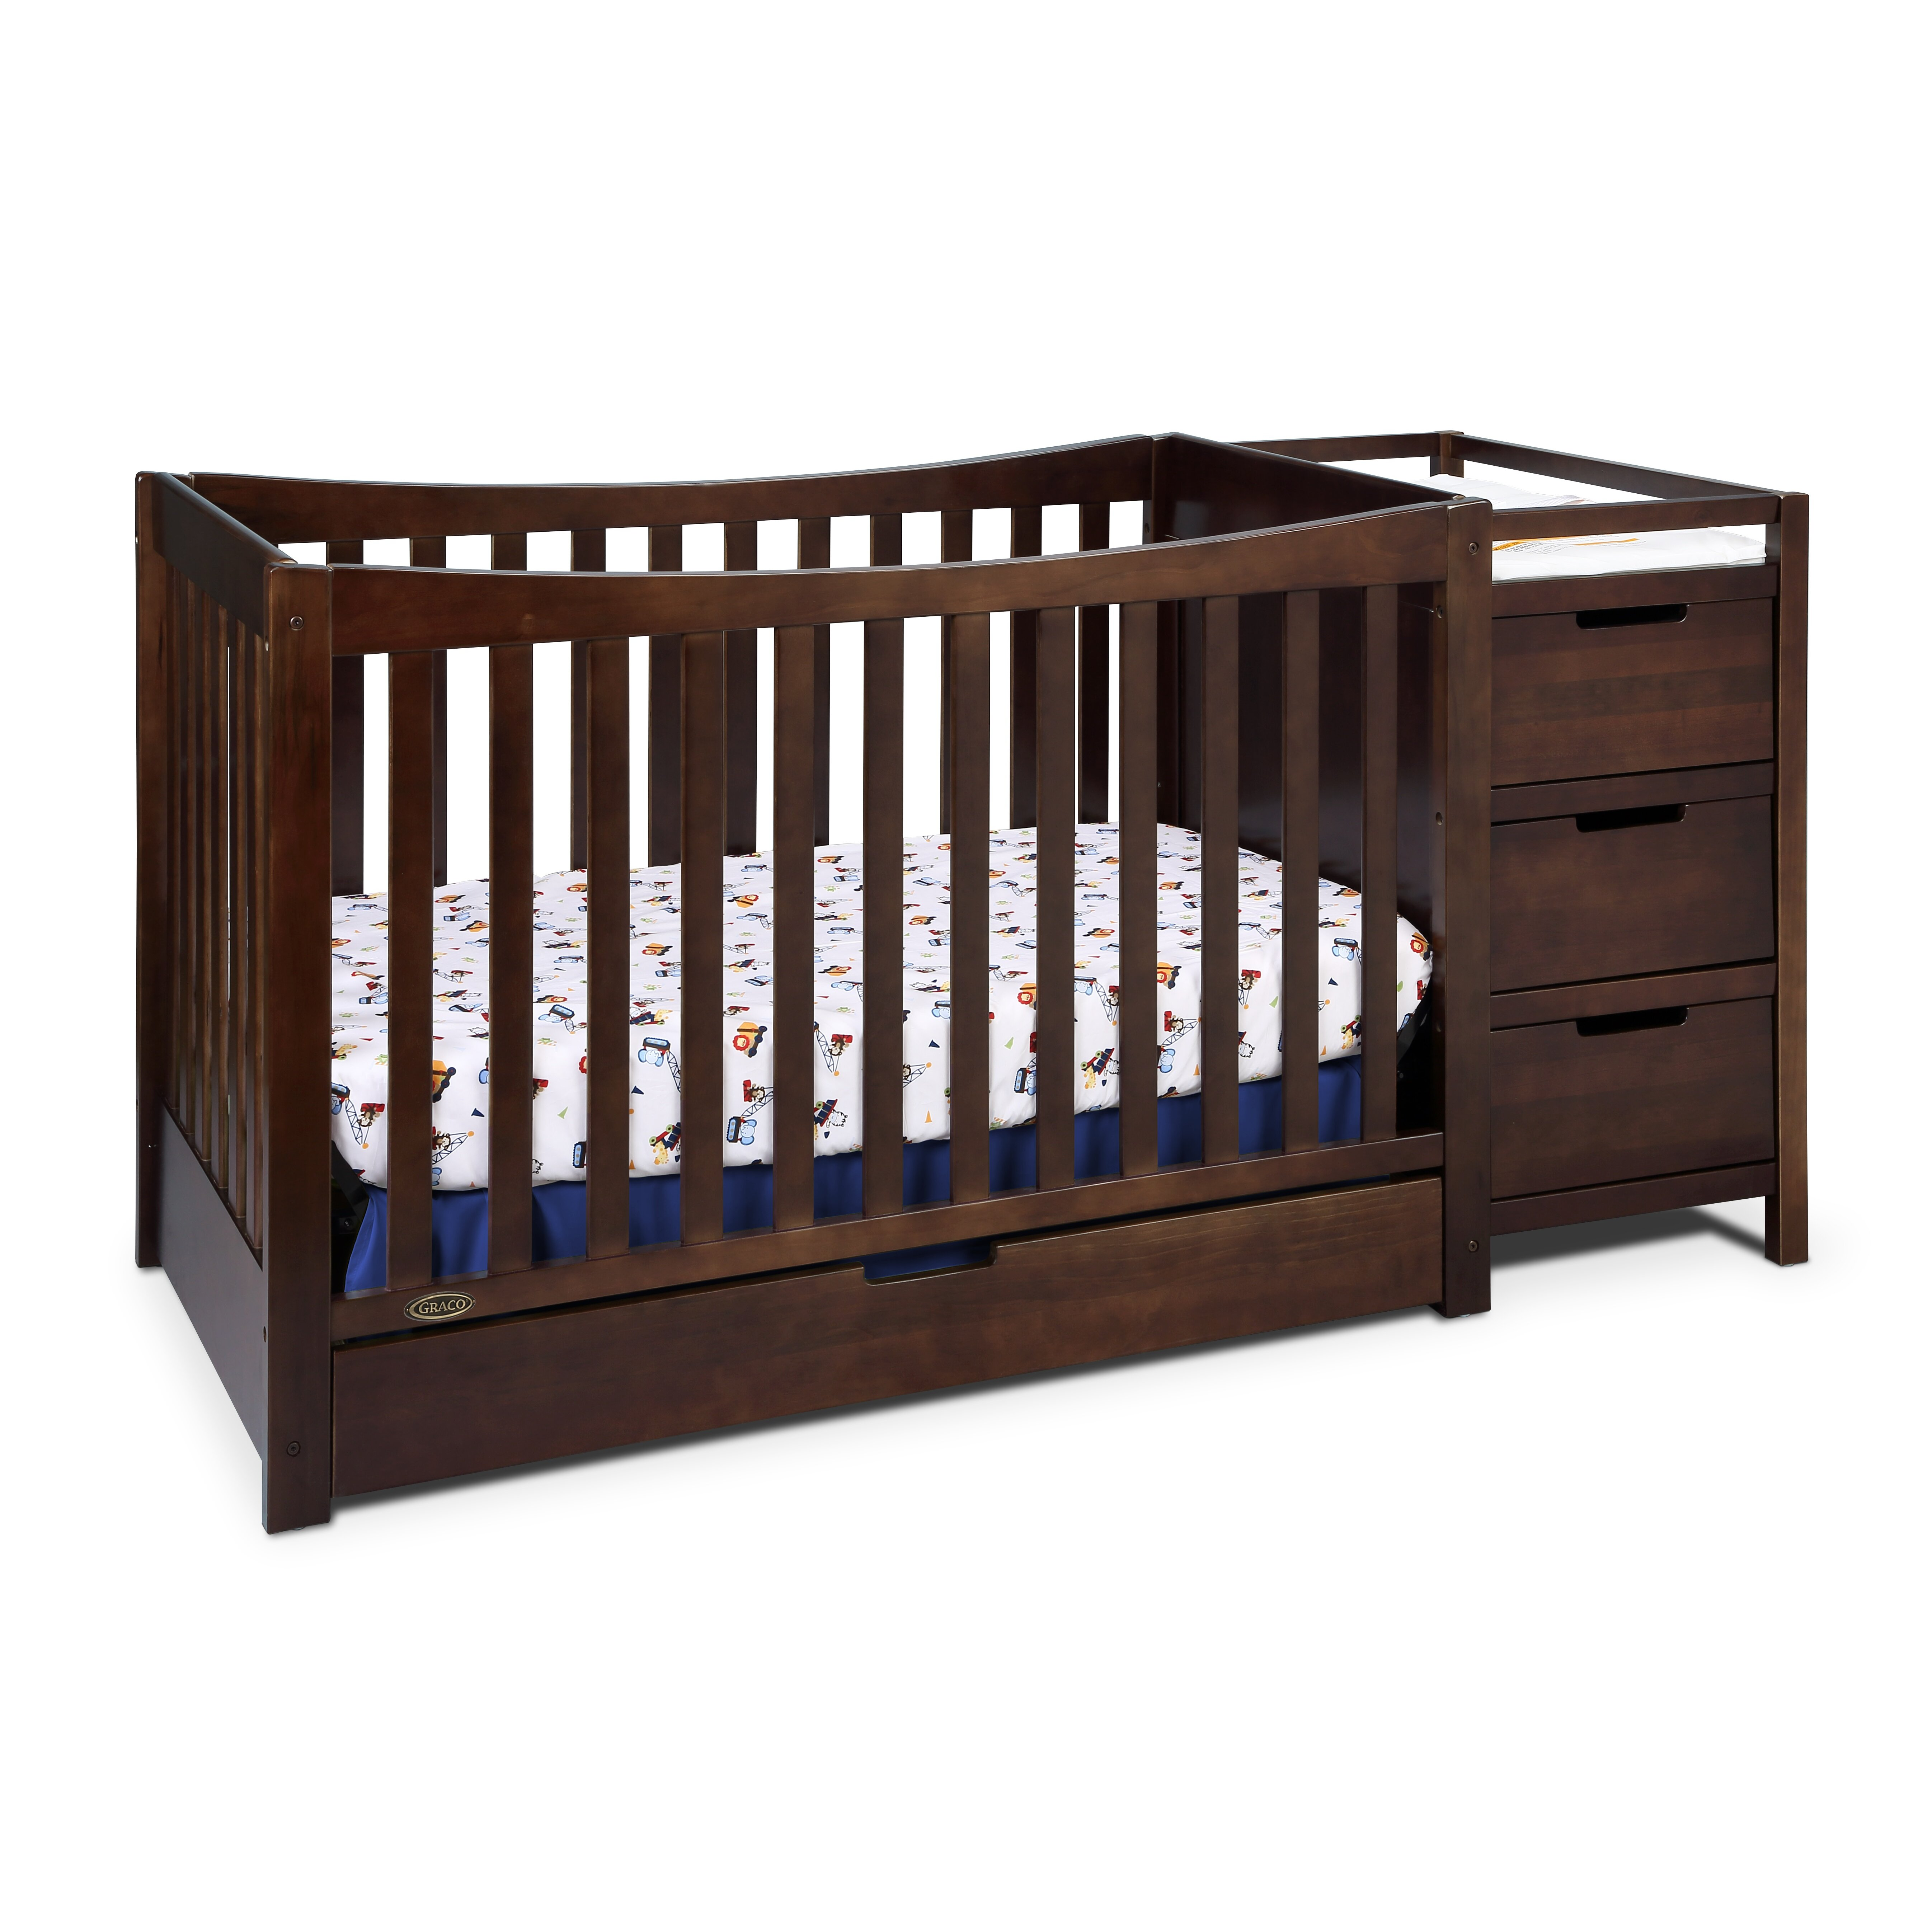 Graco Remi 4-in-1 Convertible Crib and Changer & Reviews | Wayfair.ca